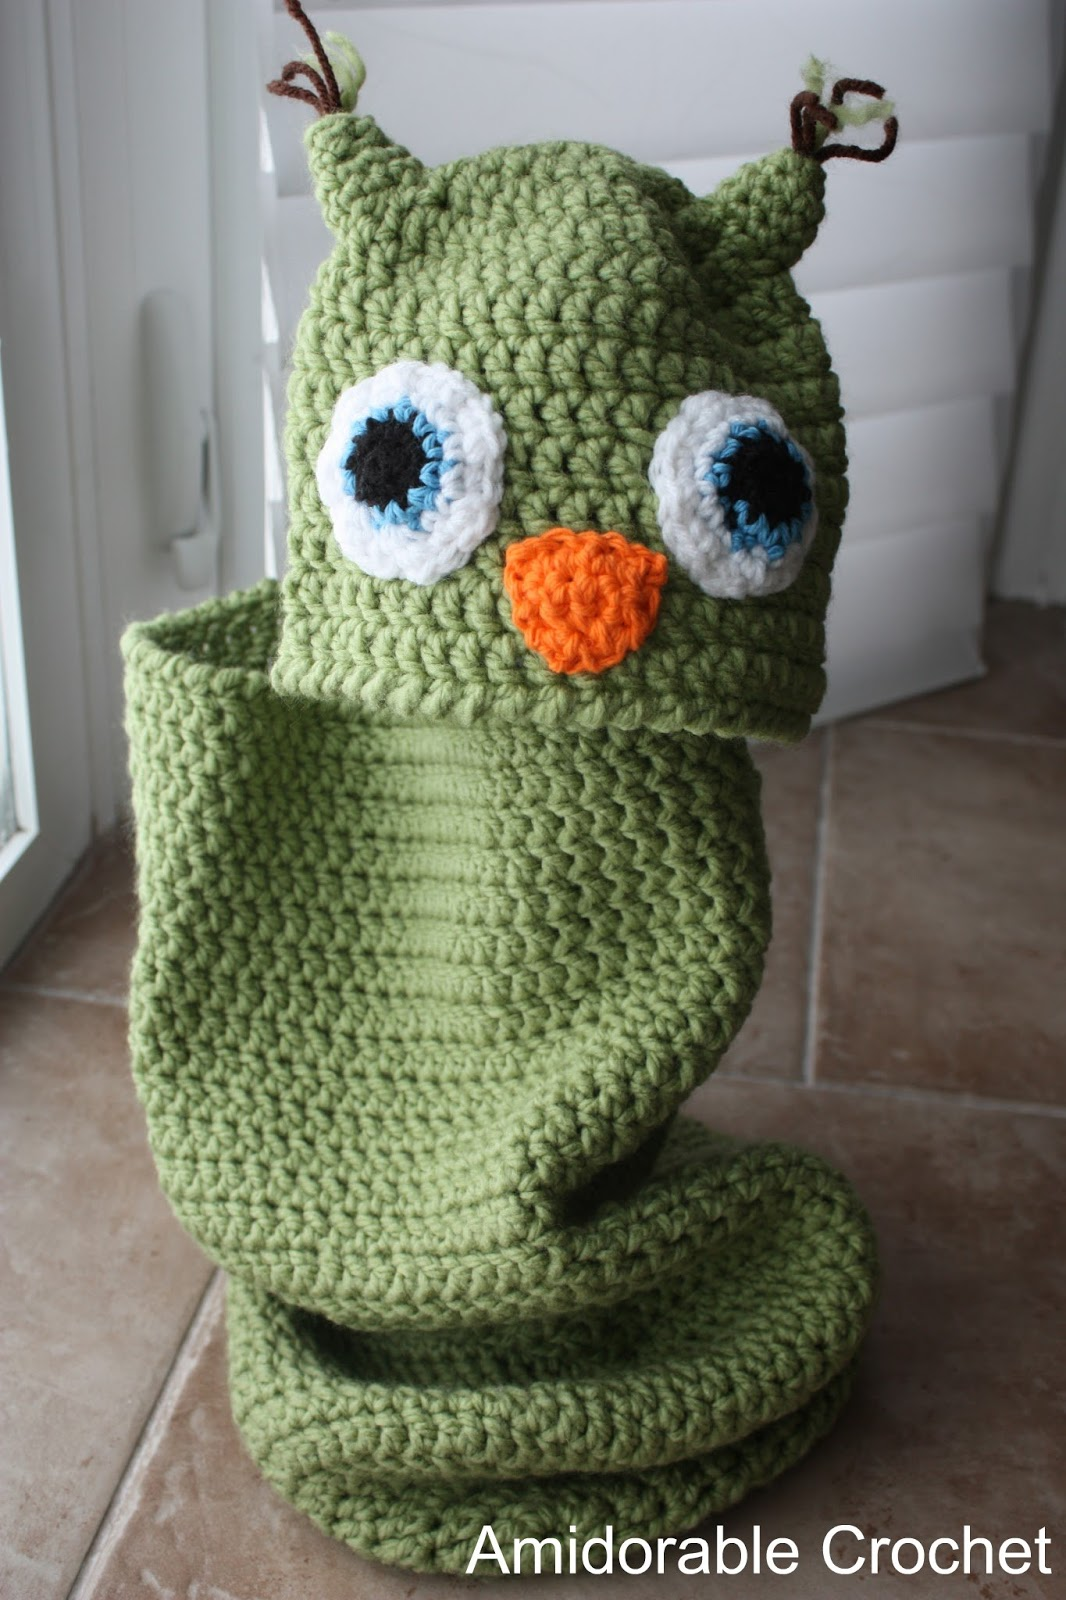 A[mi]dorable Crochet: Who...who...wants a free pattern????